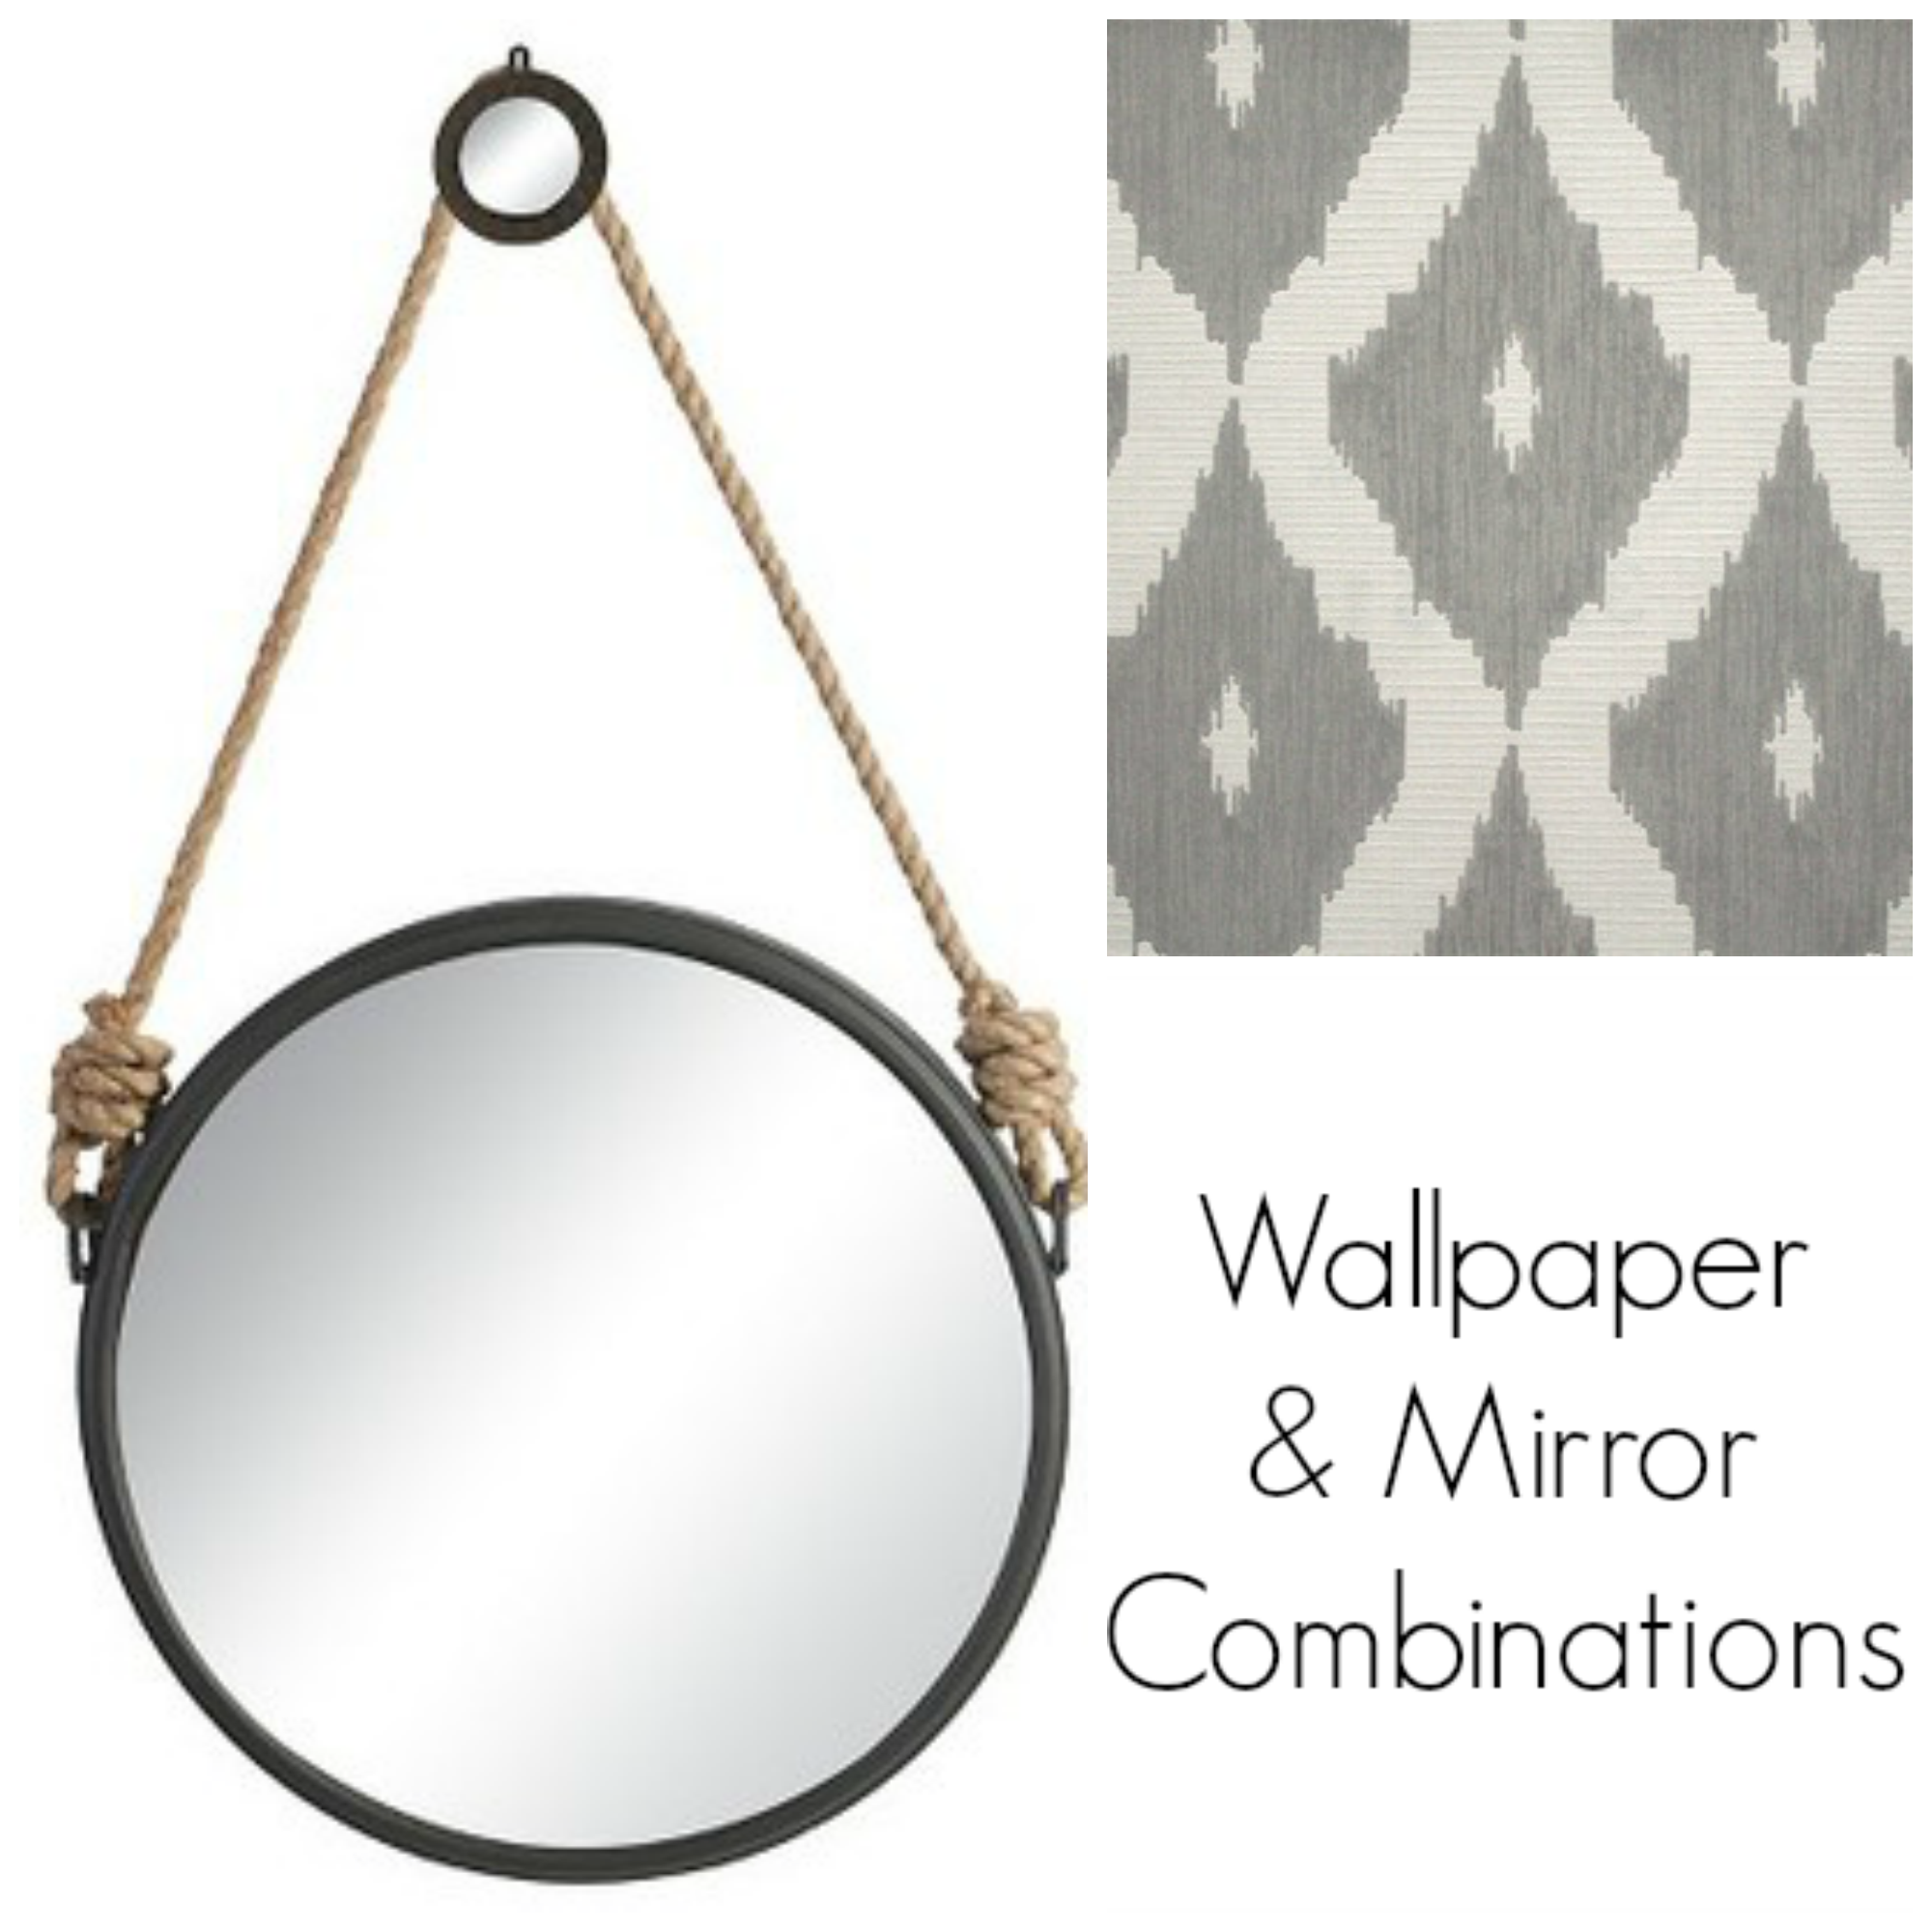 Couples mirrors wallpaper the striped house for Mirror wallpaper